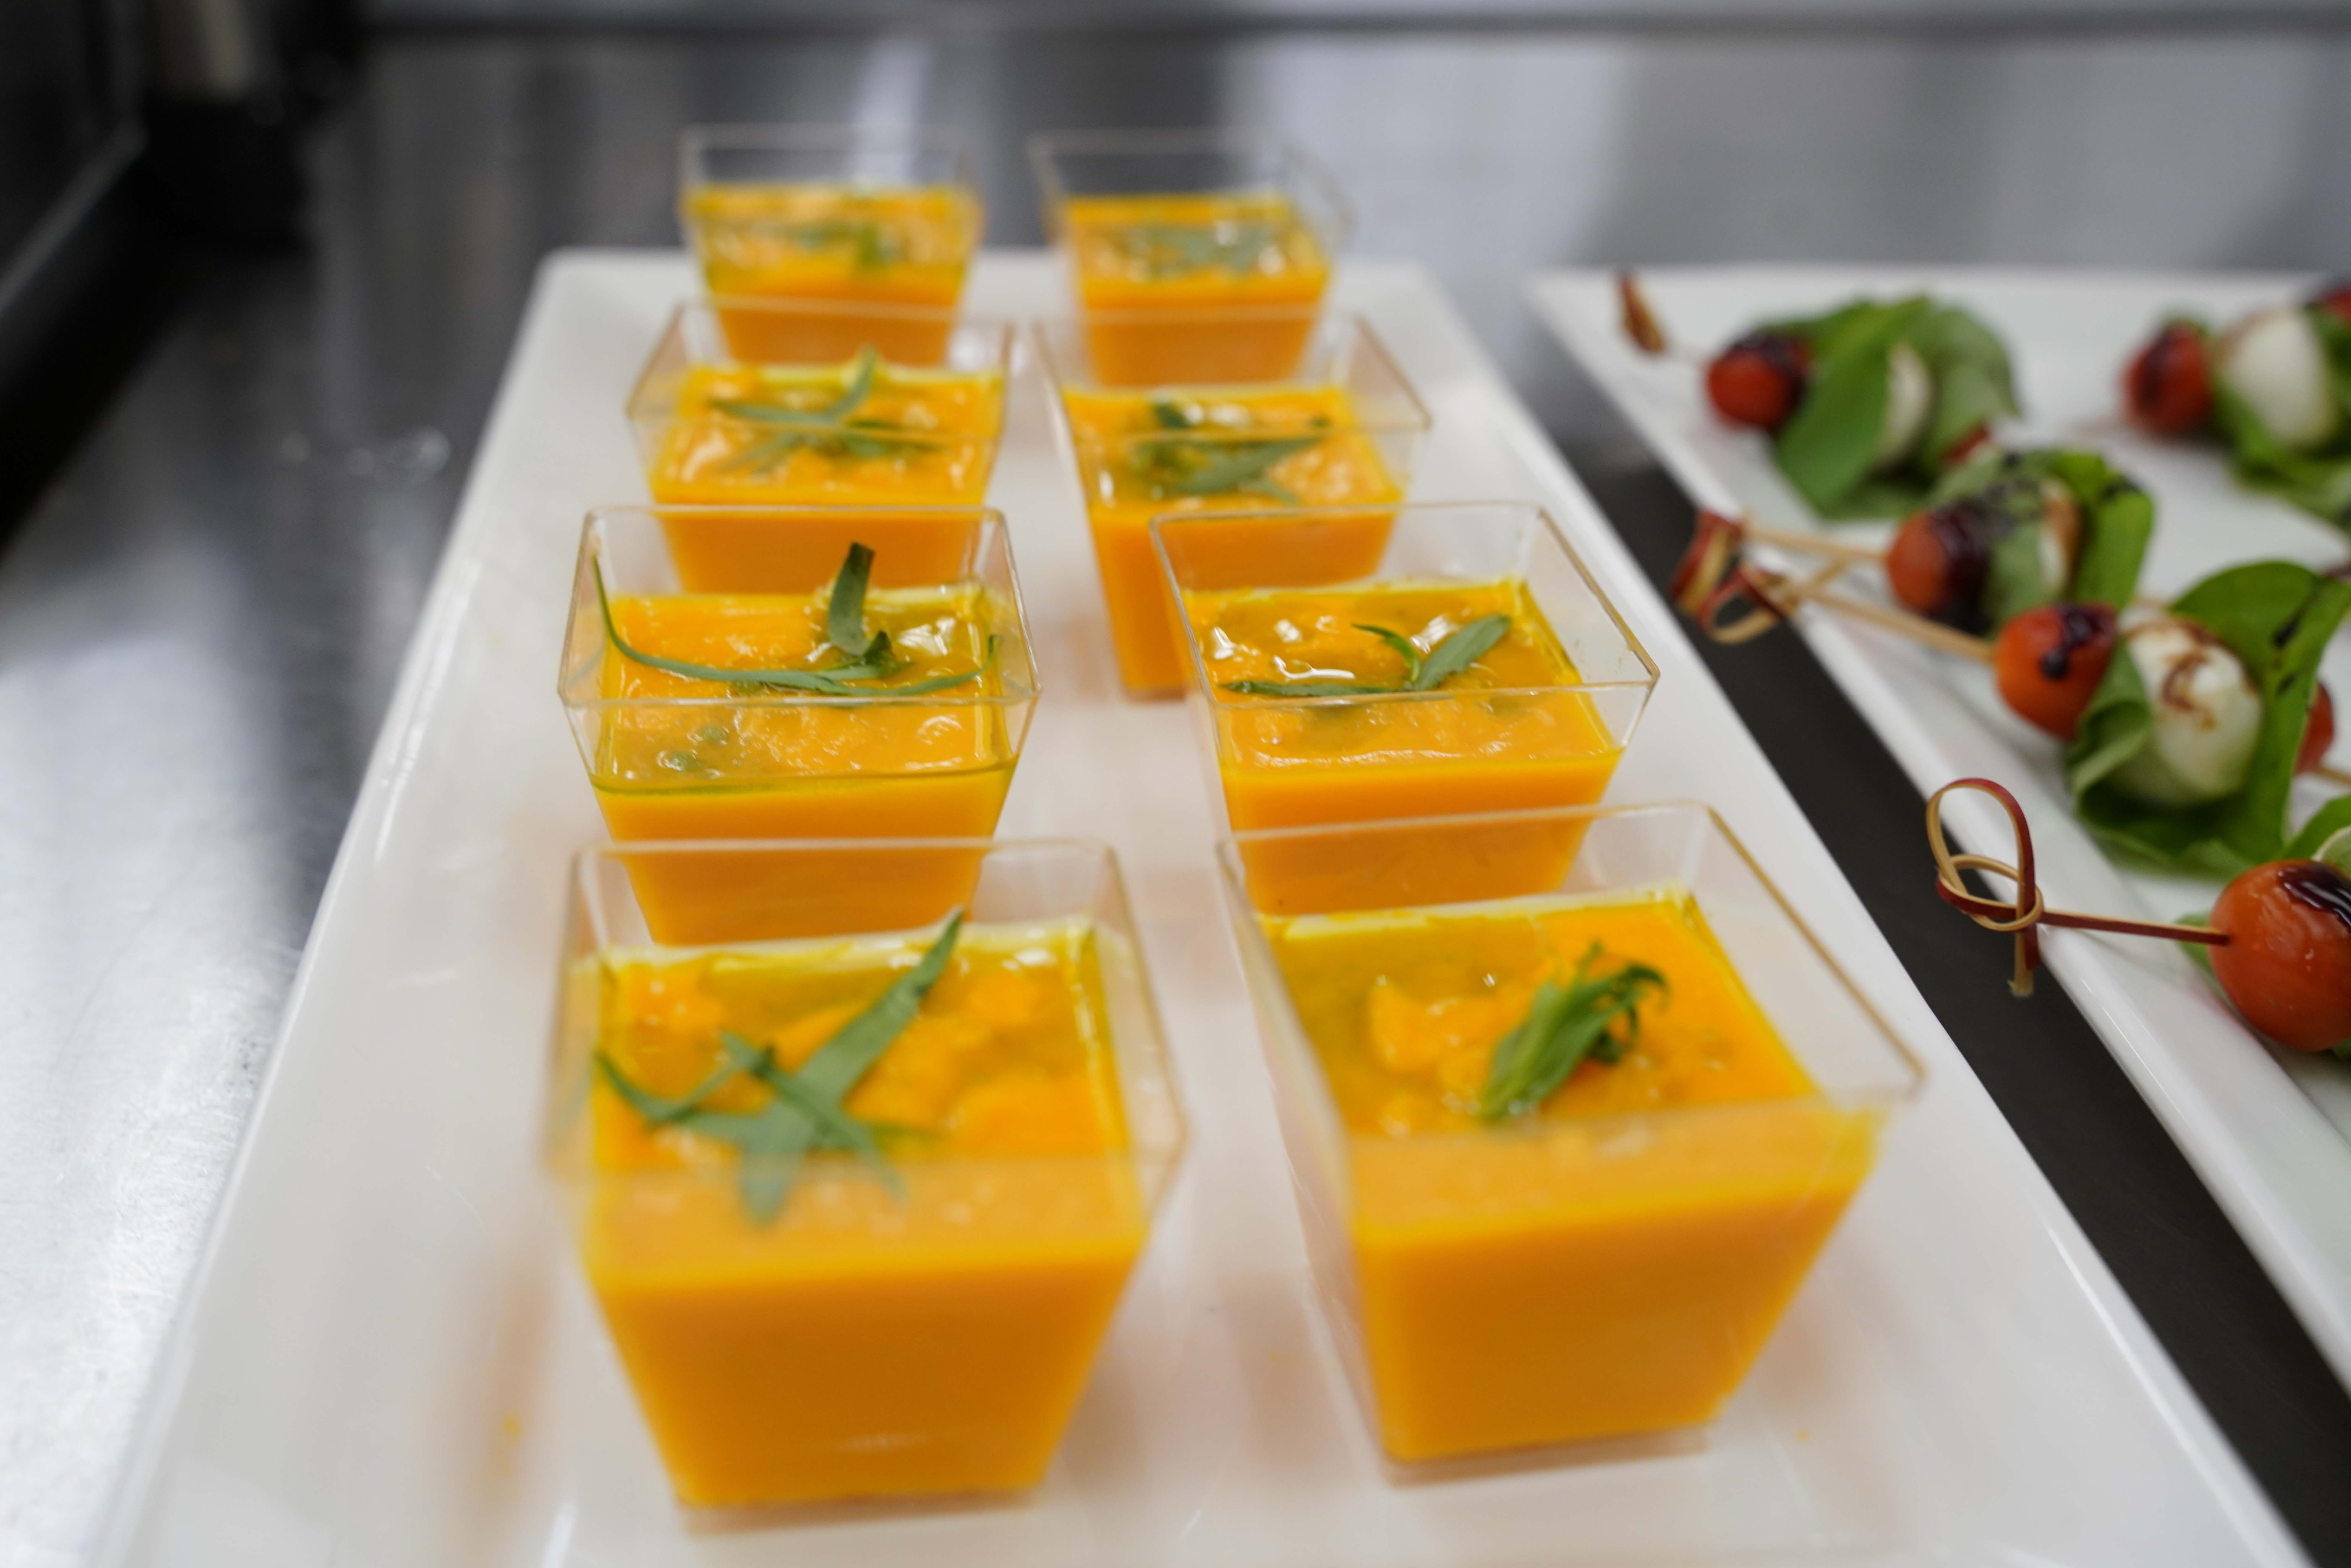 Soup prepared by BC Culinary Arts students